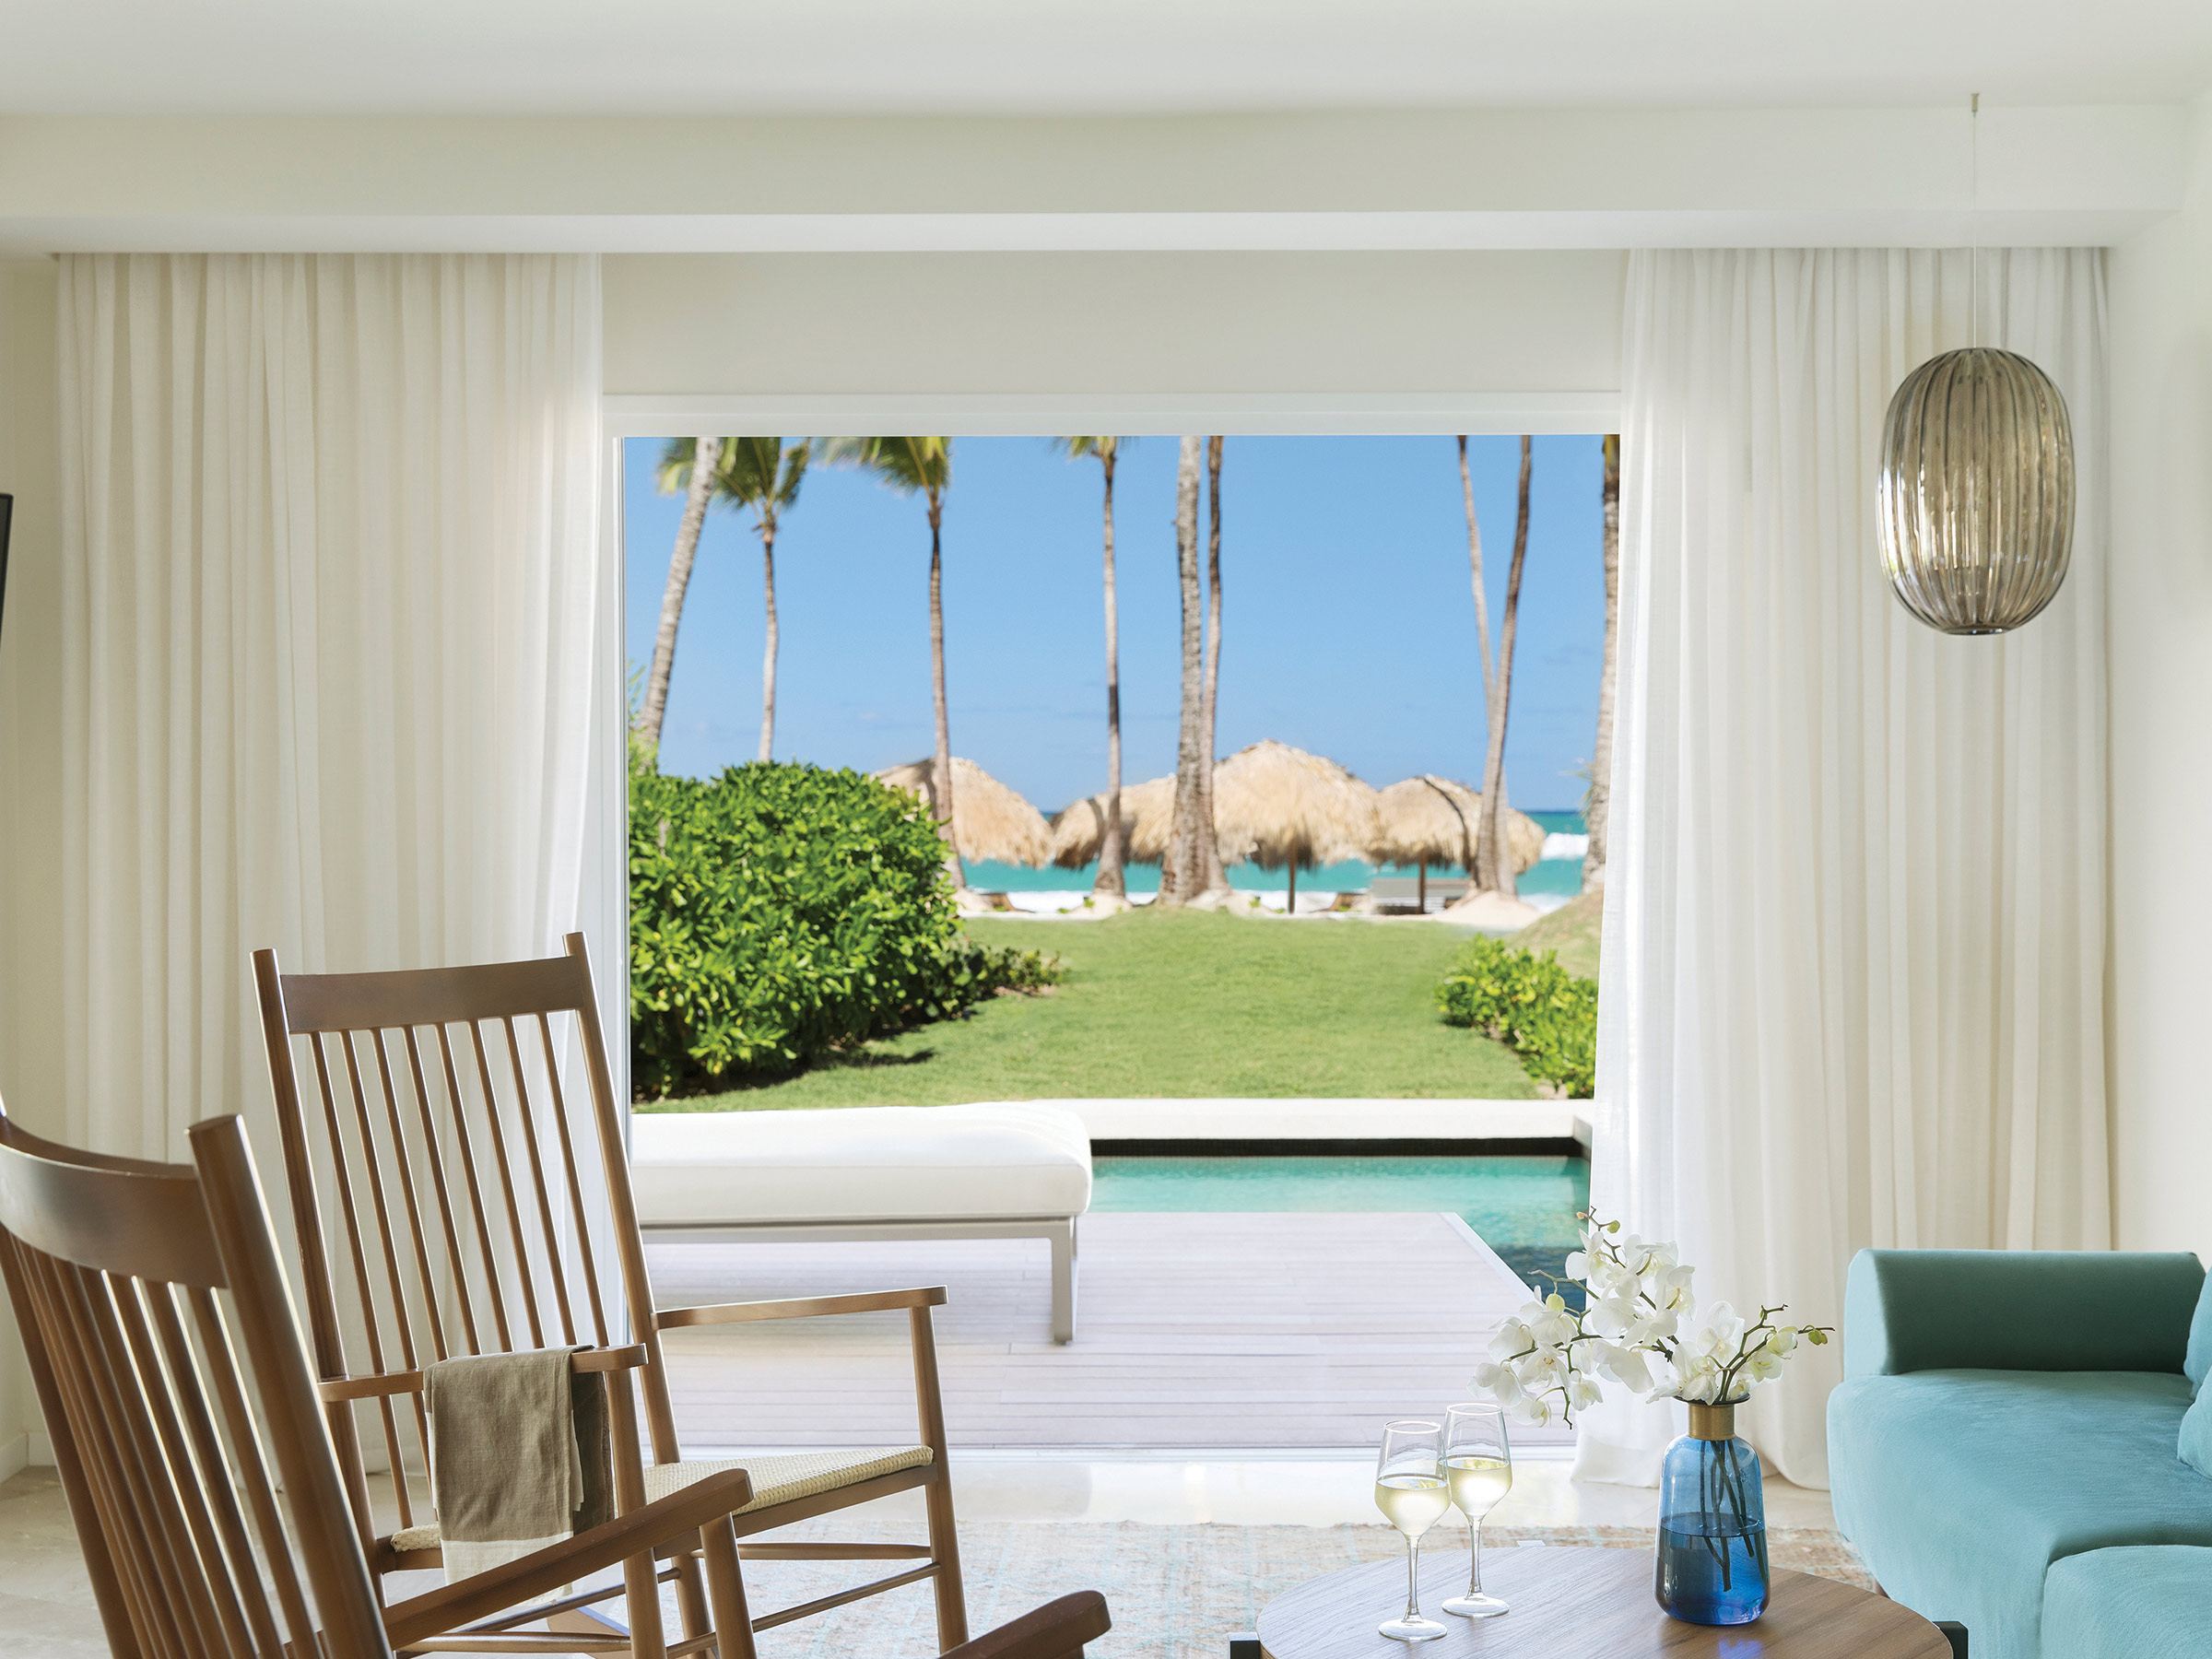 Enjoy the Best of the Caribbean in Our Punta Cana Suites with Private Pool